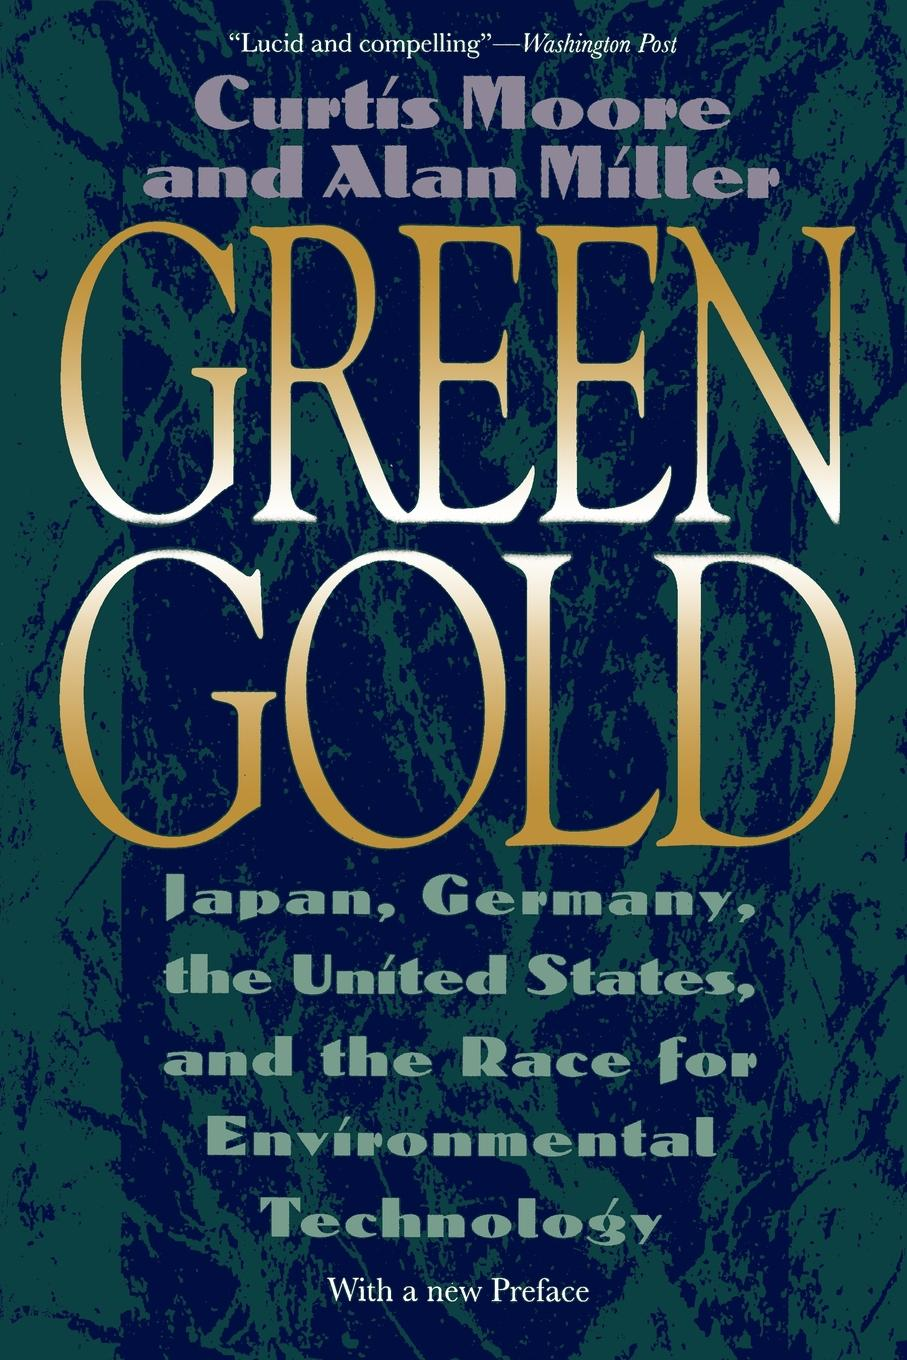 Curtis Moore, Alan Miller Green Gold. Japan, Germany, the United States, and the Race for Environmental Technology [zob] the united states cmc 3318 186 servo 8923 barab00 w1 import switch